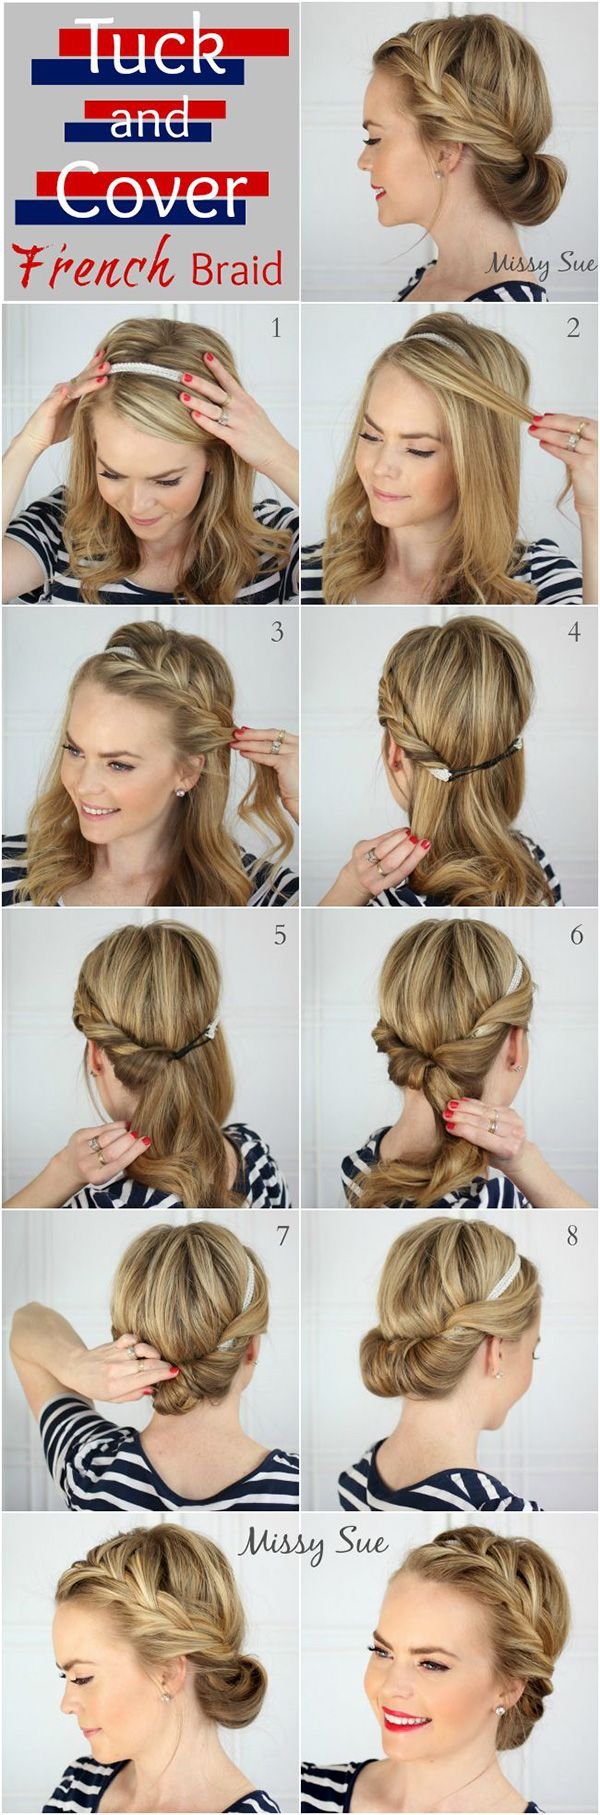 10 Easy Hairstyles For Bangs To Get Them Out Of Your Face Gurl Com Hair Styles Long Hair Tutorial Long Hair Styles